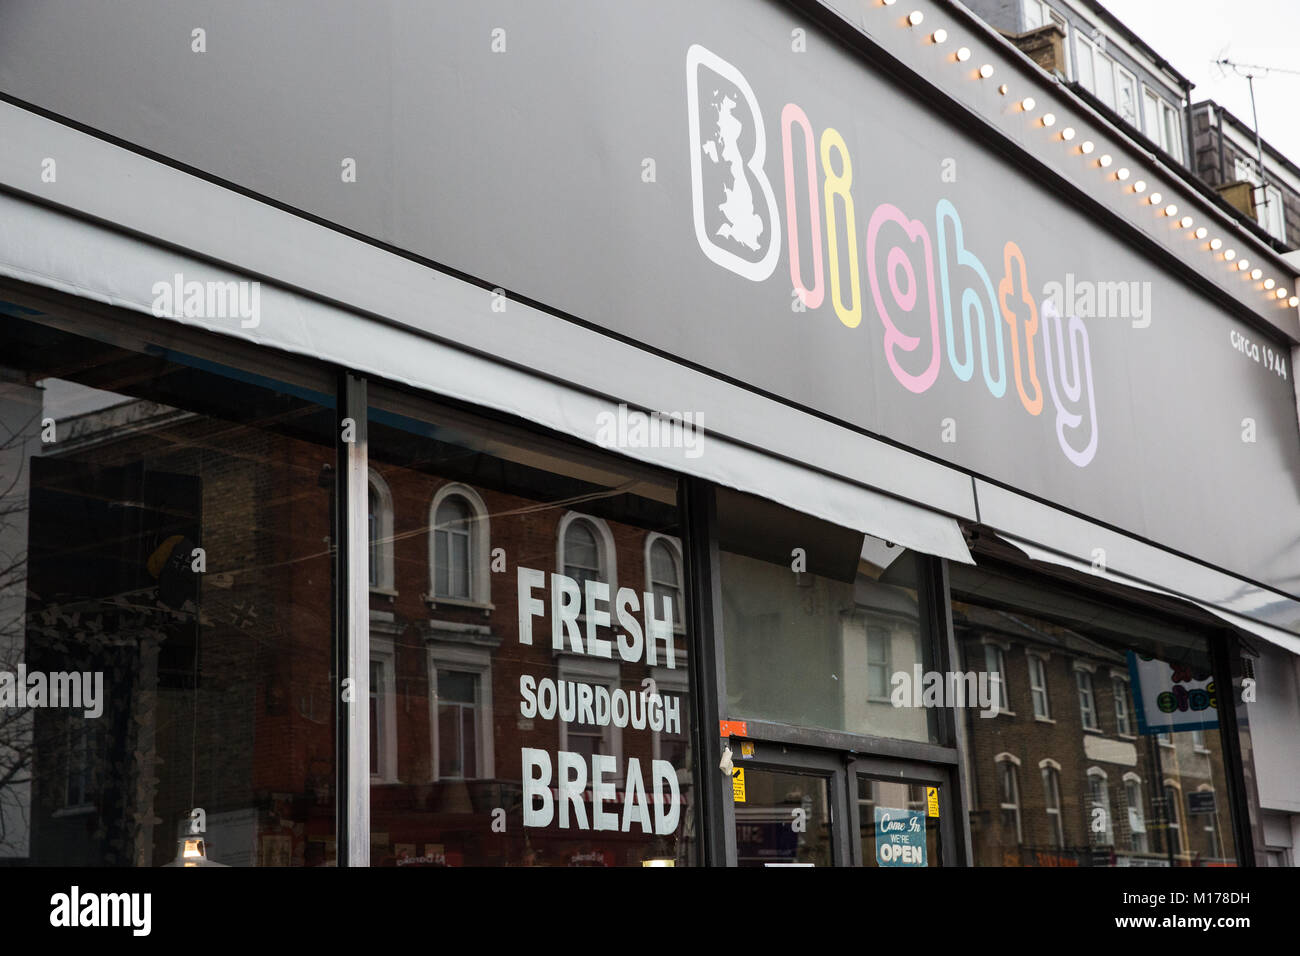 London, UK. 27th January, 2018. The Blighty UK café in Finsbury Park. The café, themed around Sir Winston - Stock Image